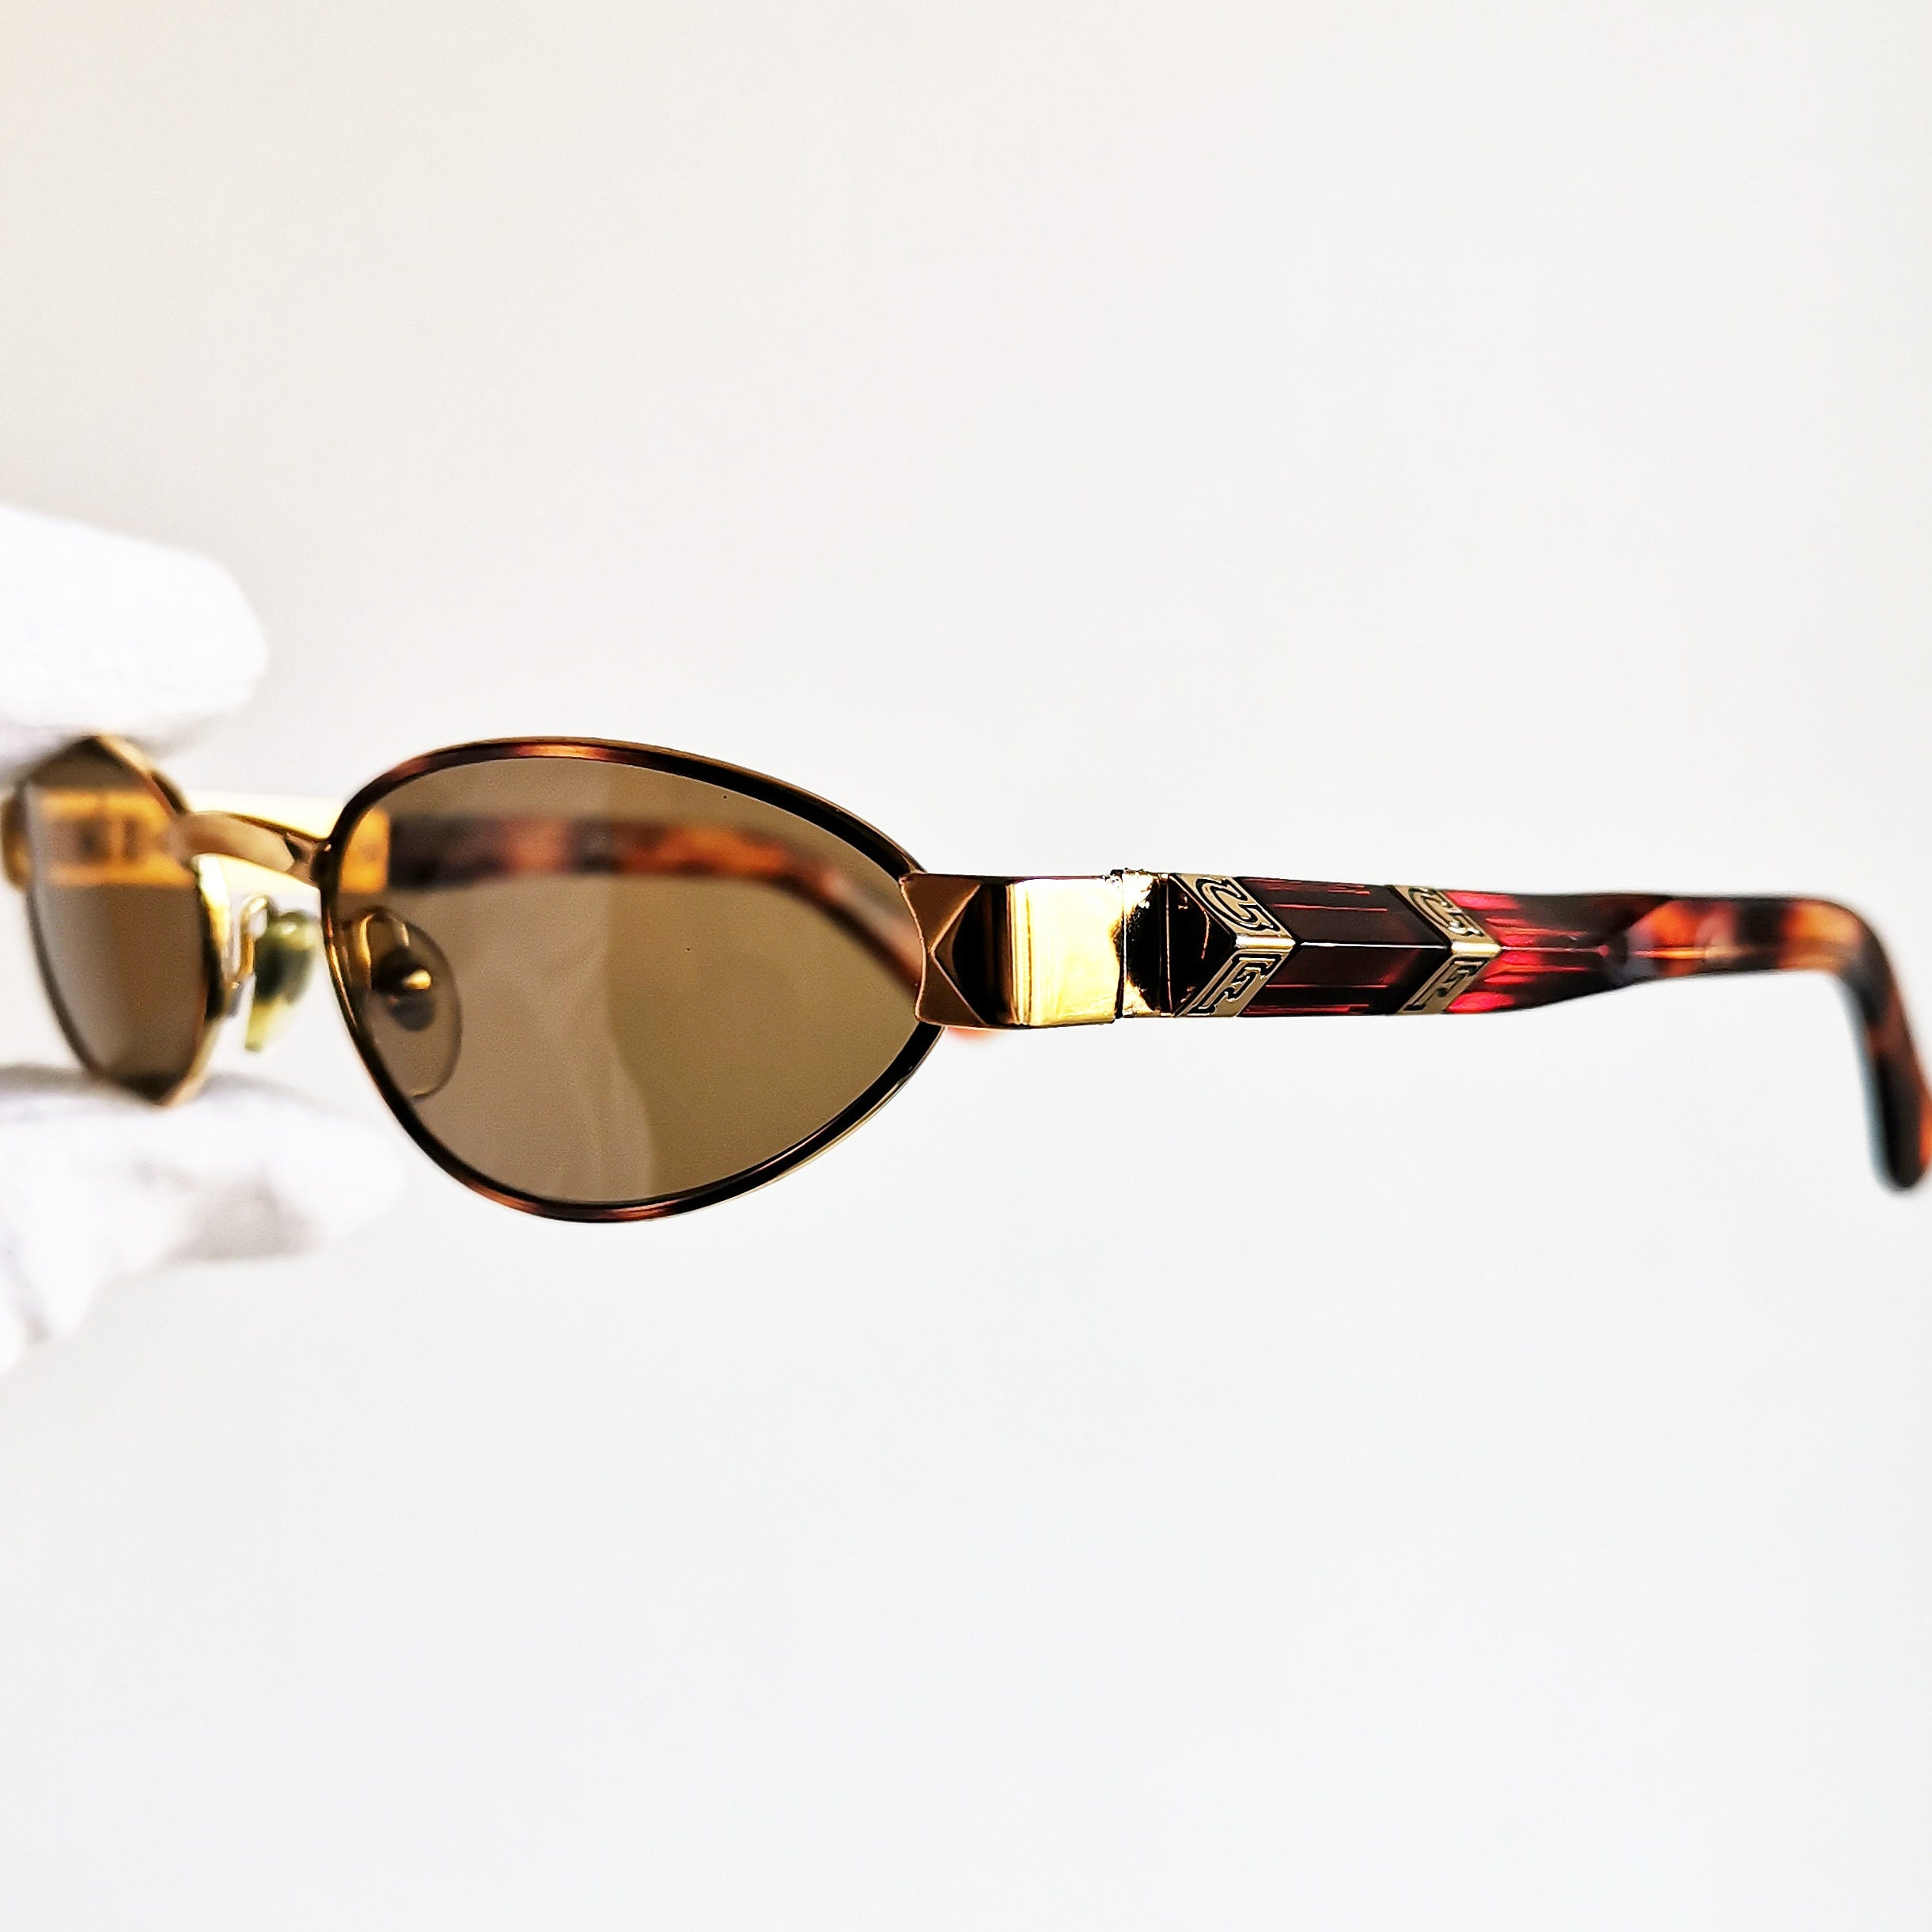 b4d07124f17b6 FERRE vintage SUNGLASSES rare oval gold arms rim temples